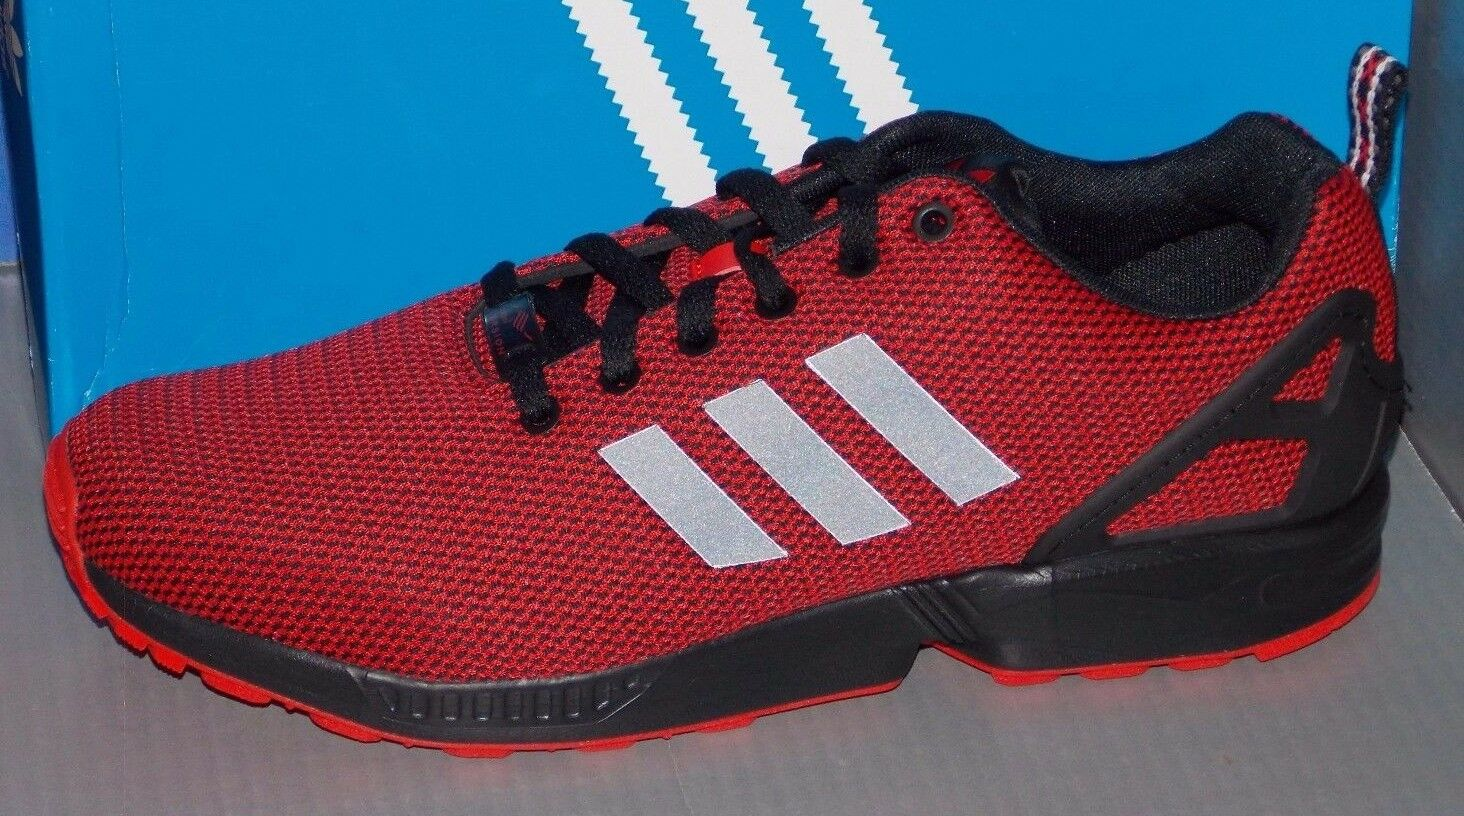 MENS ADIDAS ZX FLUX in colors RED / BLACK / GRANITE SIZE 11.5